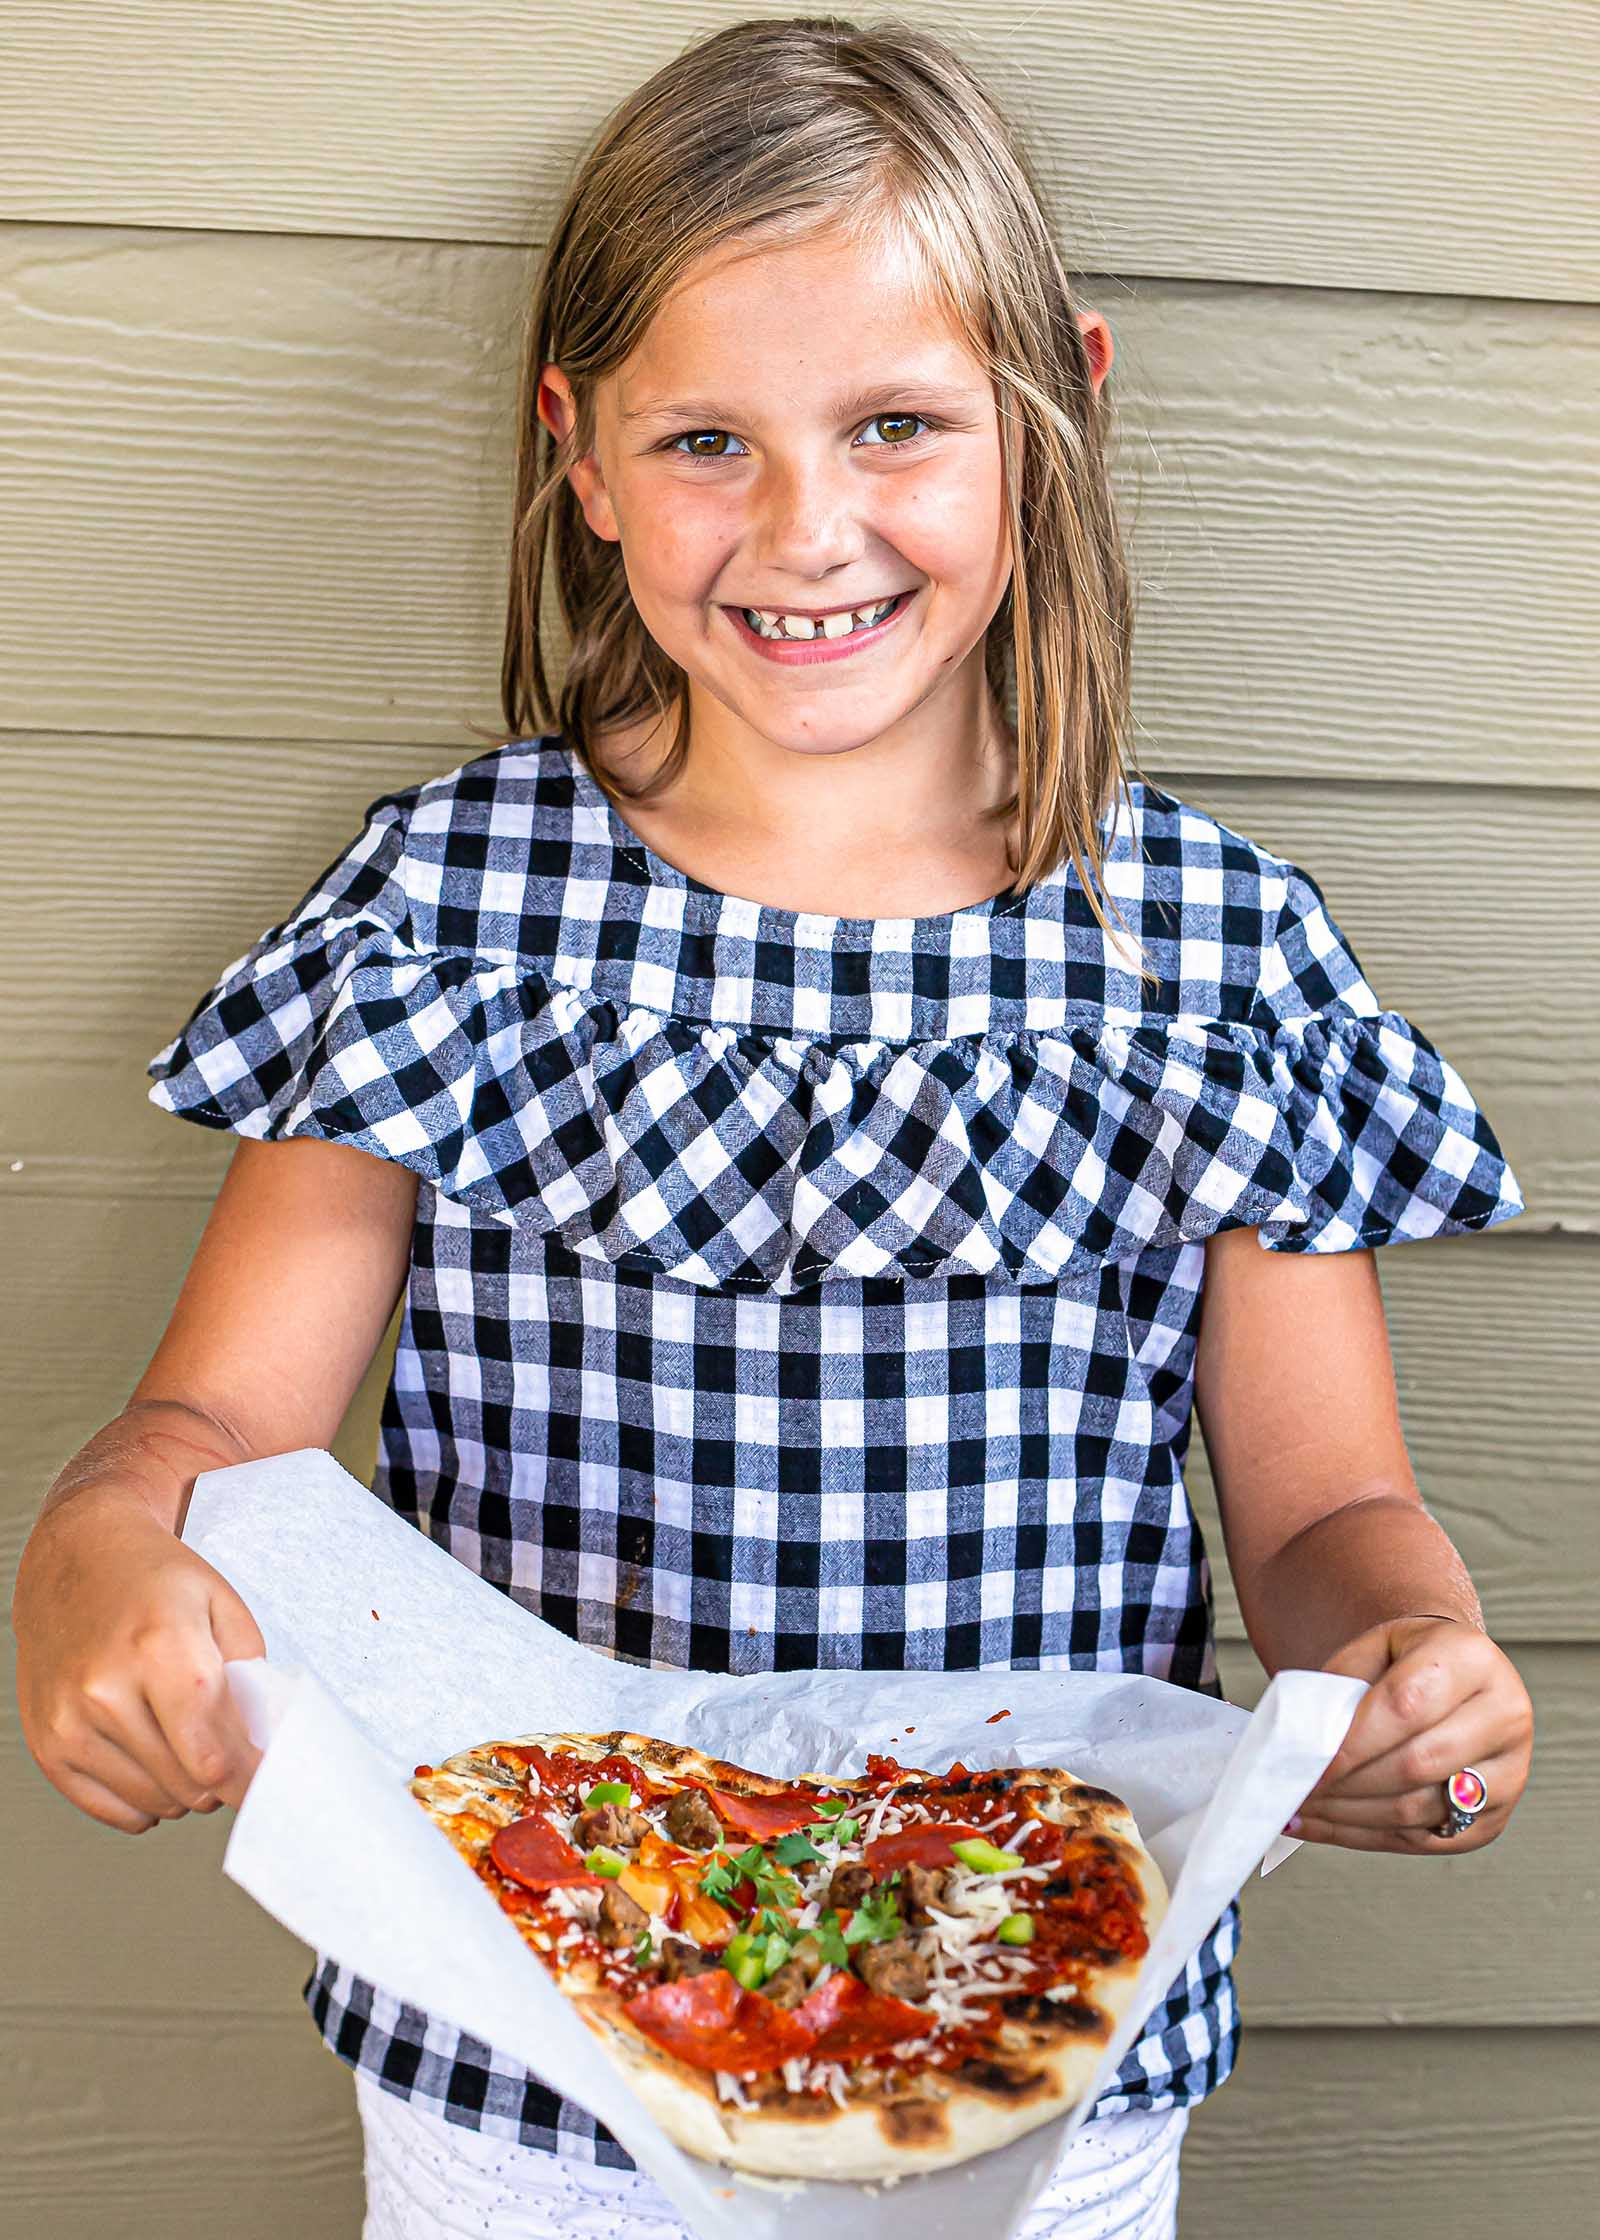 How to grill pizza. A child holding a homemade pizza and smiling.